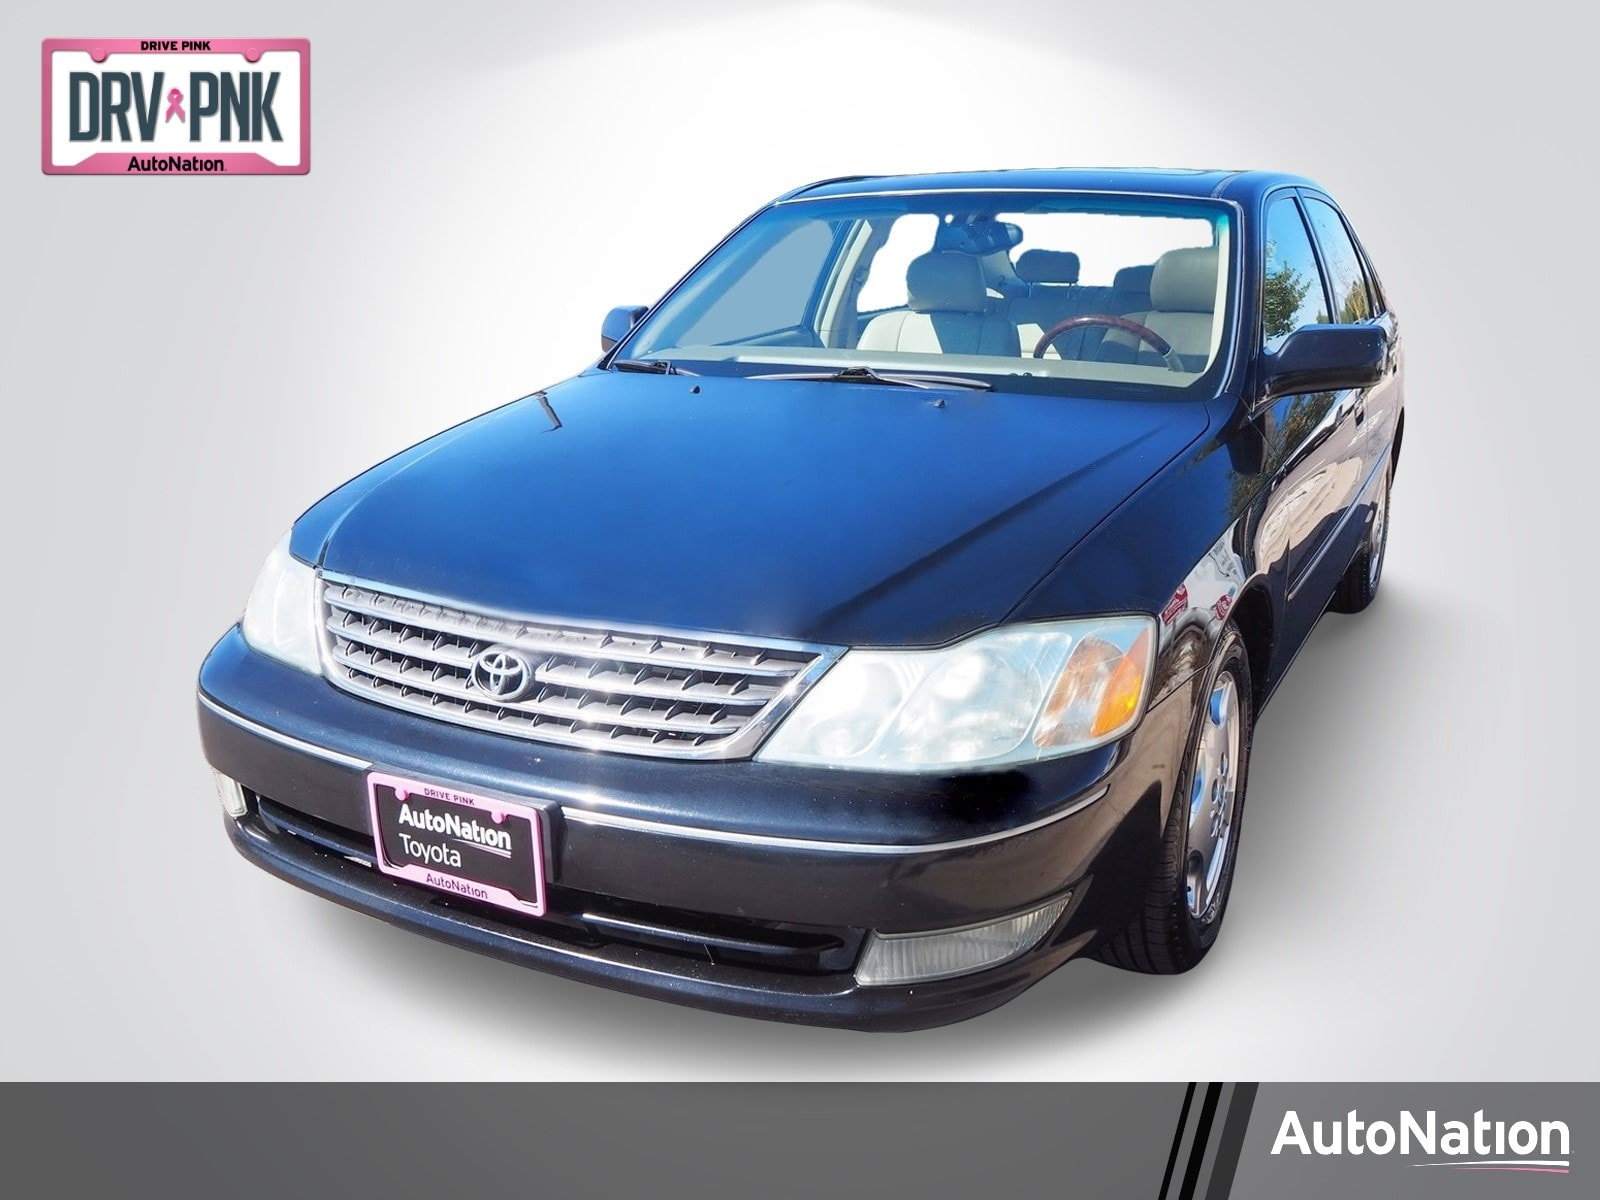 used 2004 toyota avalon for sale at autonation toyota arapahoe vin 4t1bf28b14u344214 autonation toyota arapahoe